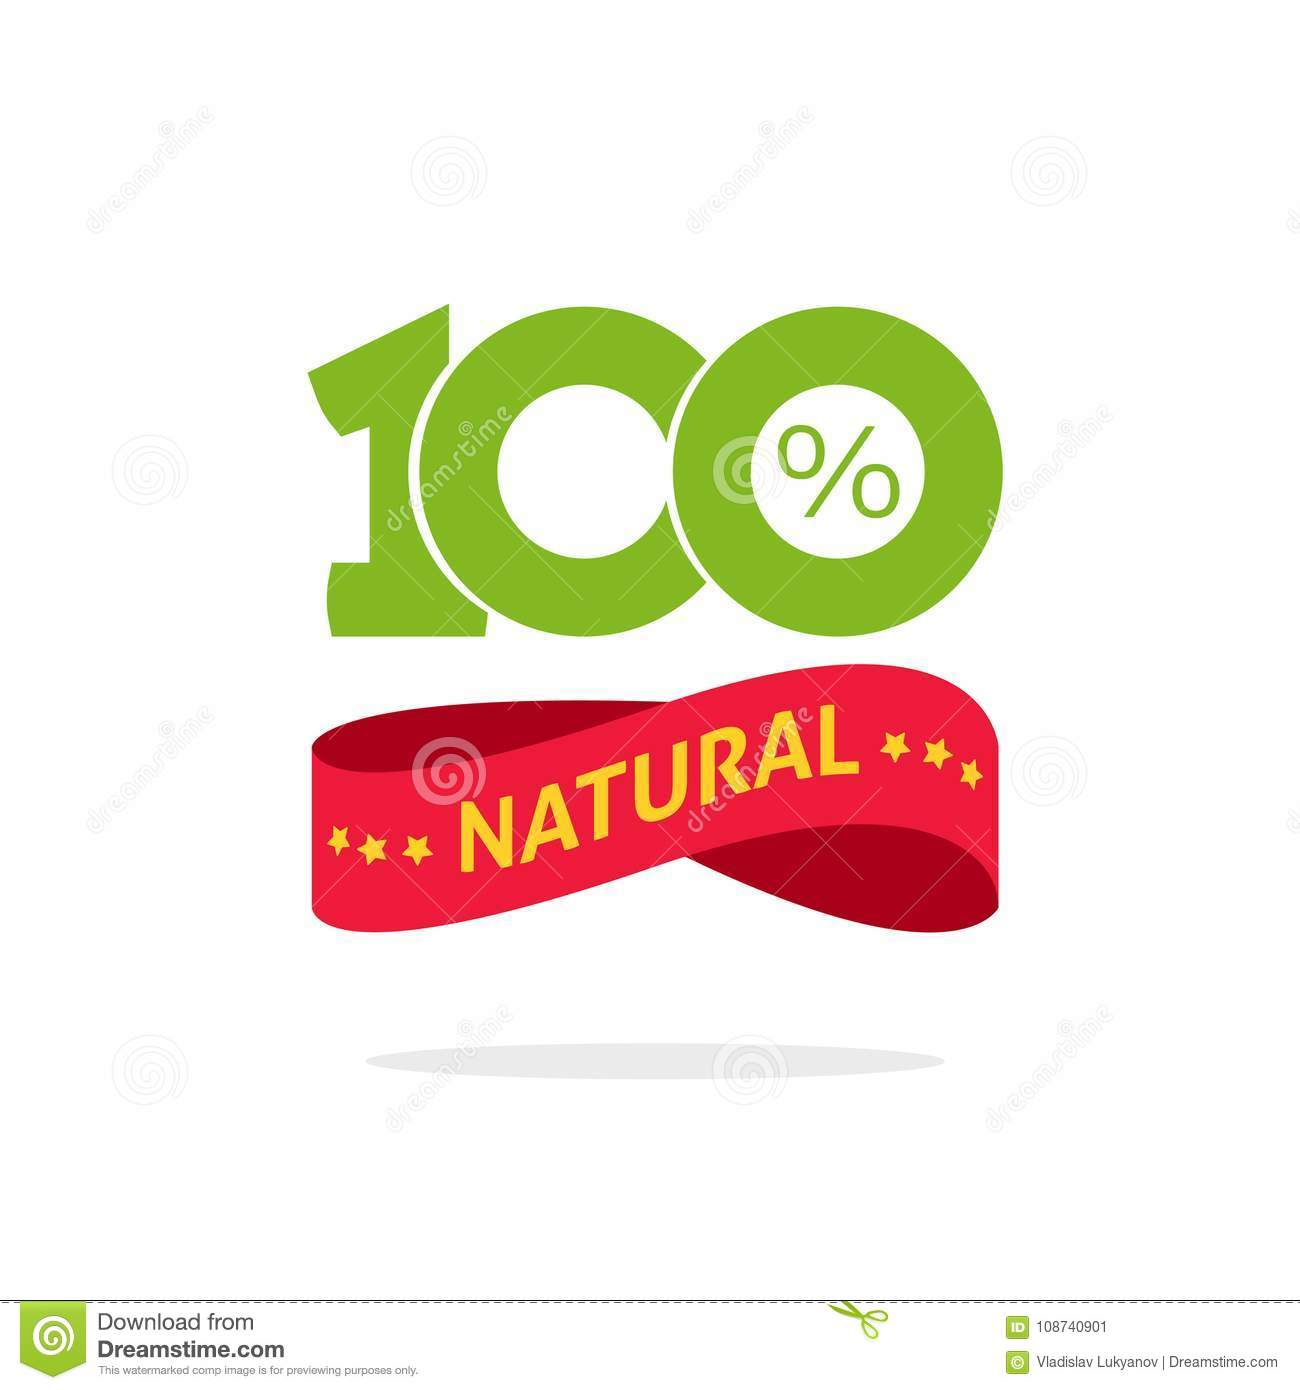 100 natural vector green and red label stamp or rubber isolated 100 natural vector green and red label stamp or rubber isolated 100 percent natural sticker or logo symbol design buycottarizona Image collections